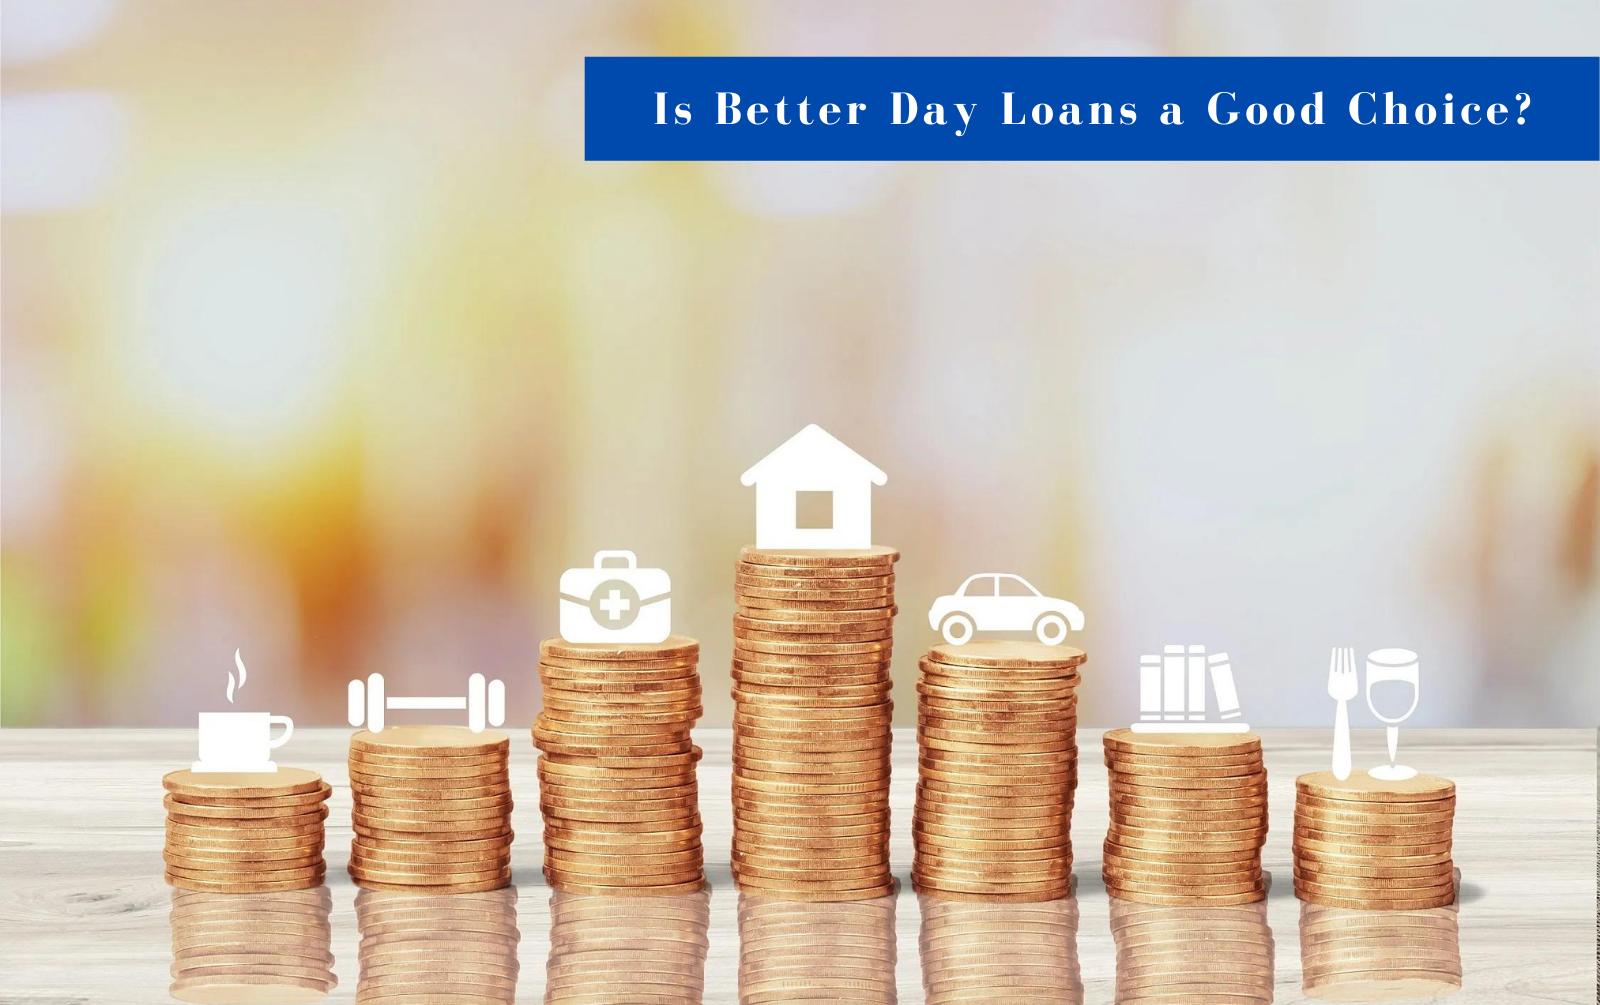 Is Better Day Loans a Good Choice?